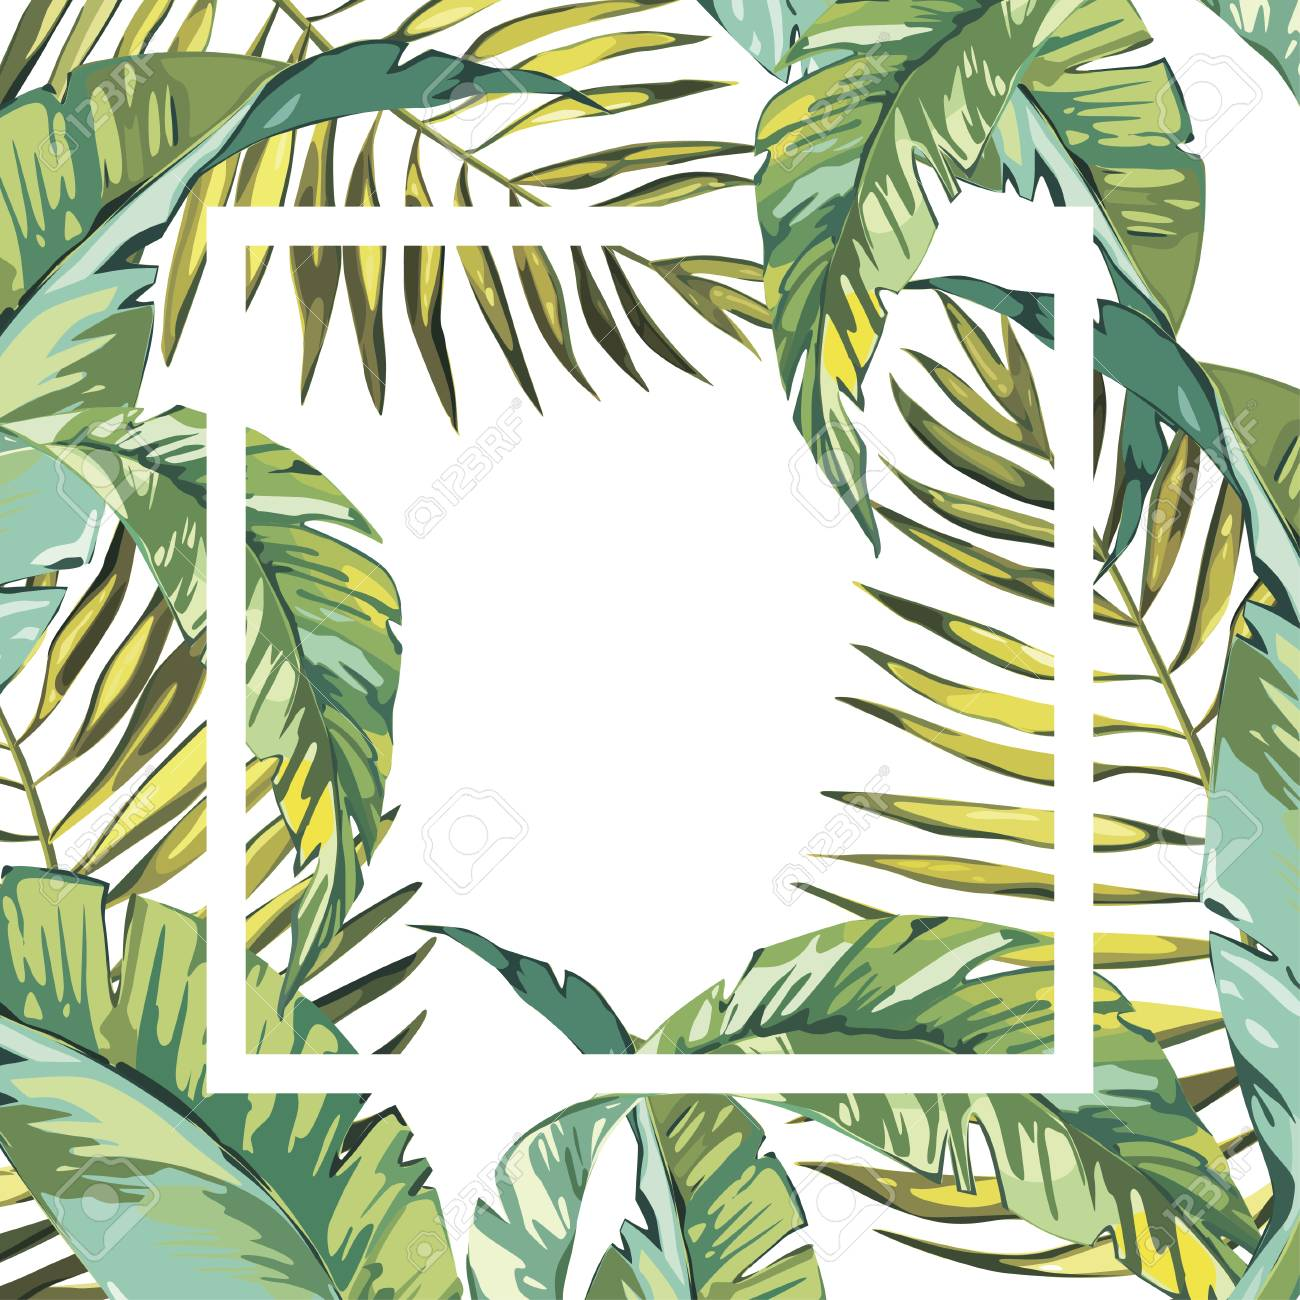 Banner Poster With Palm Leaves Jungle Leaf Beautiful Vector Royalty Free Cliparts Vectors And Stock Illustration Image 75490337 115,000+ vectors, stock photos & psd files. banner poster with palm leaves jungle leaf beautiful vector